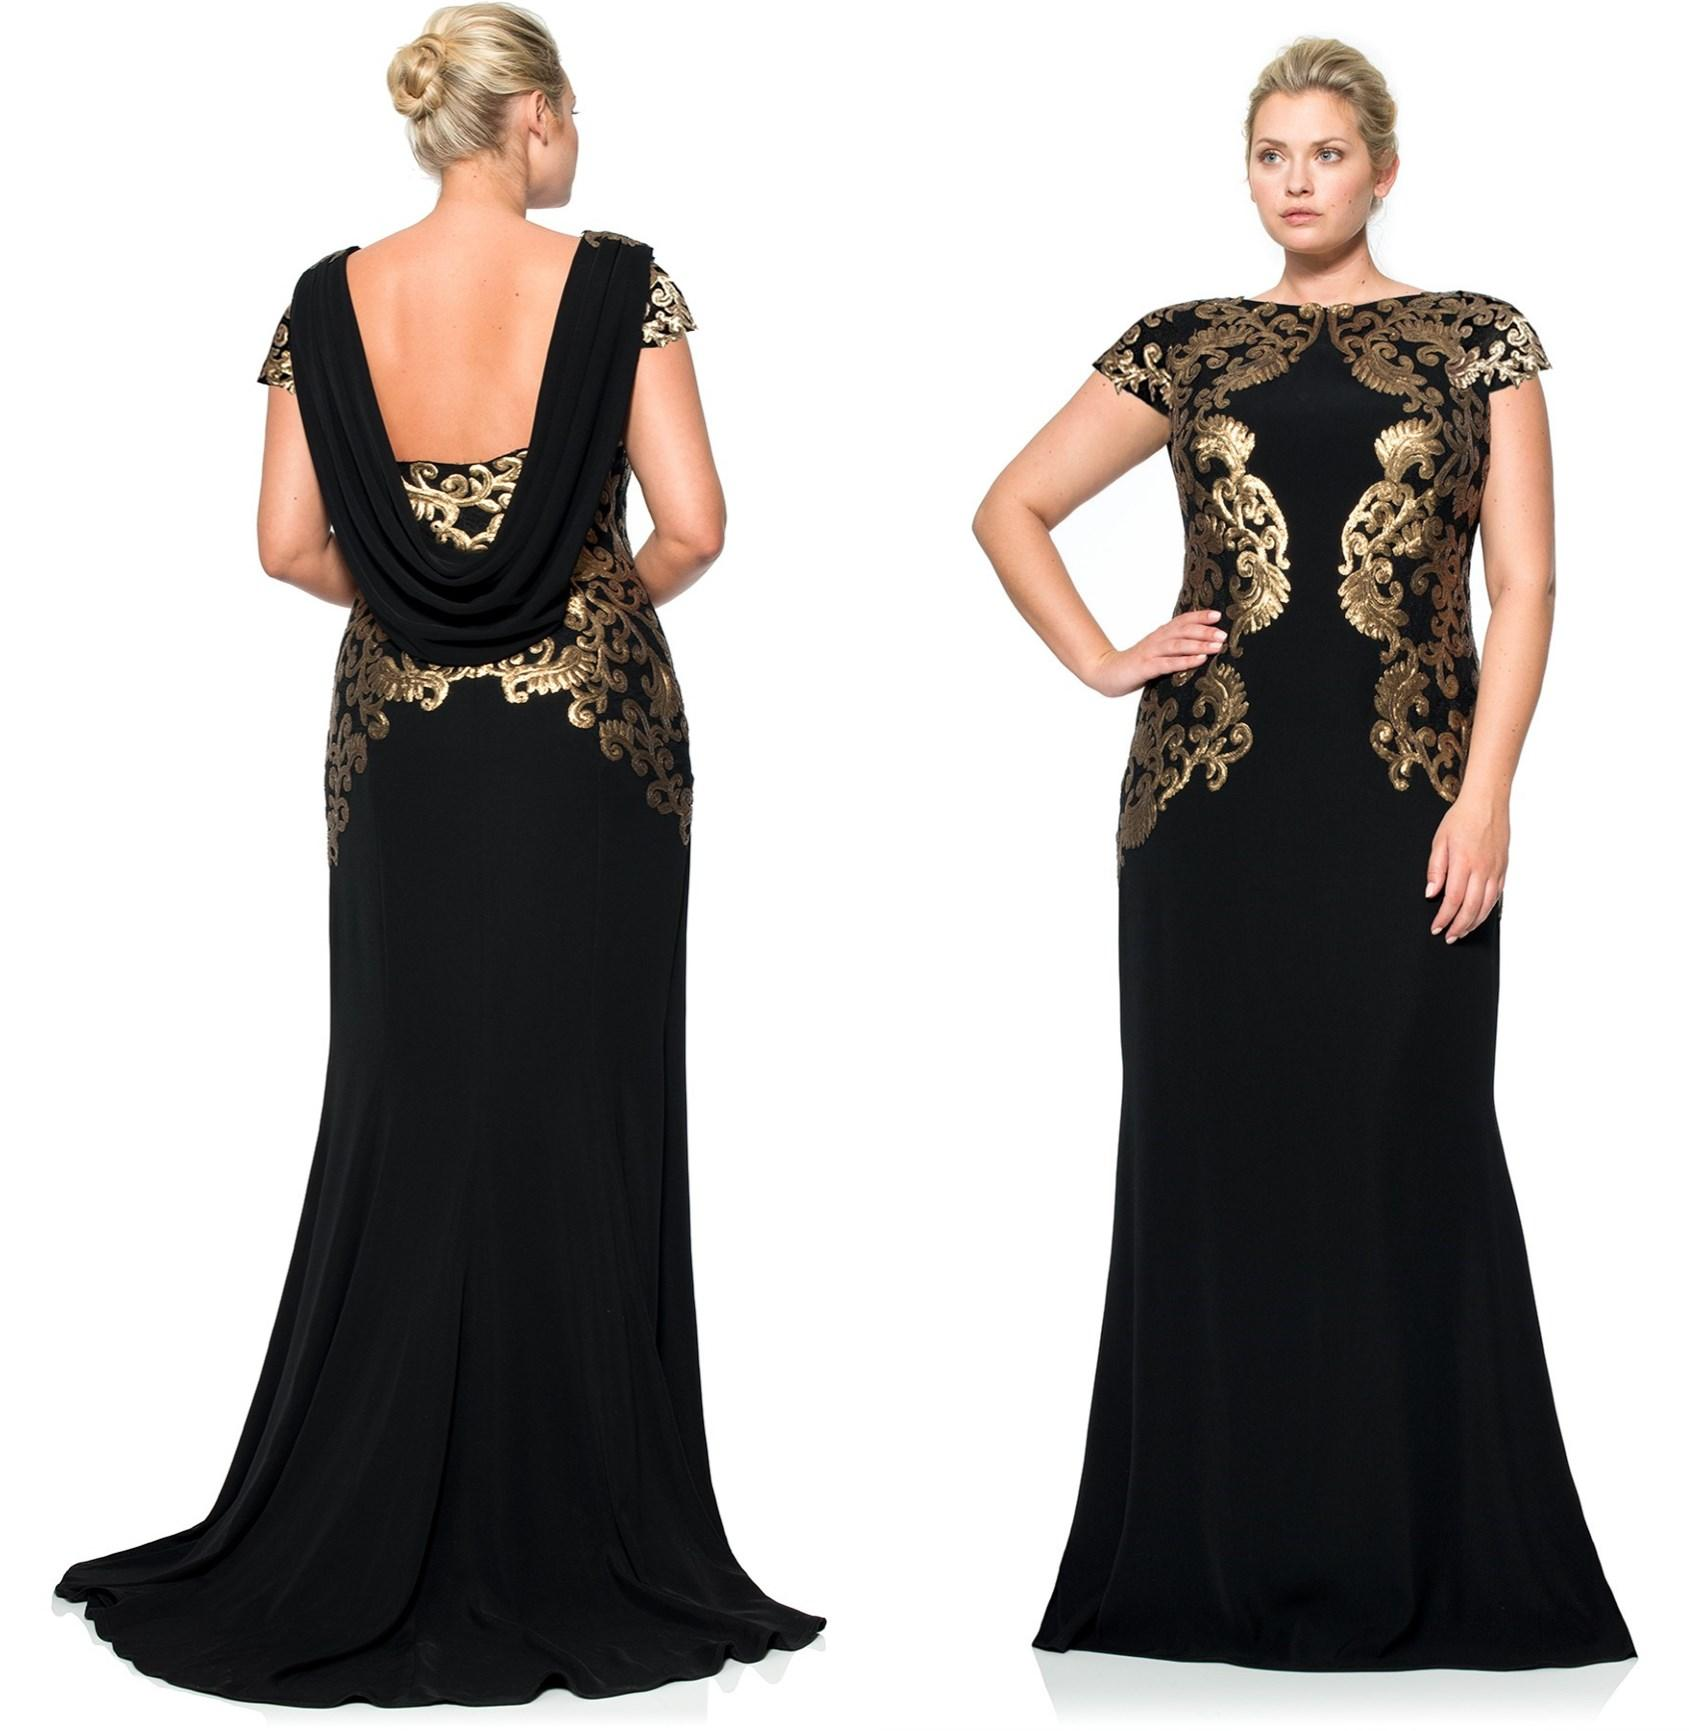 Black Evening Dresses Size - Holiday Dresses